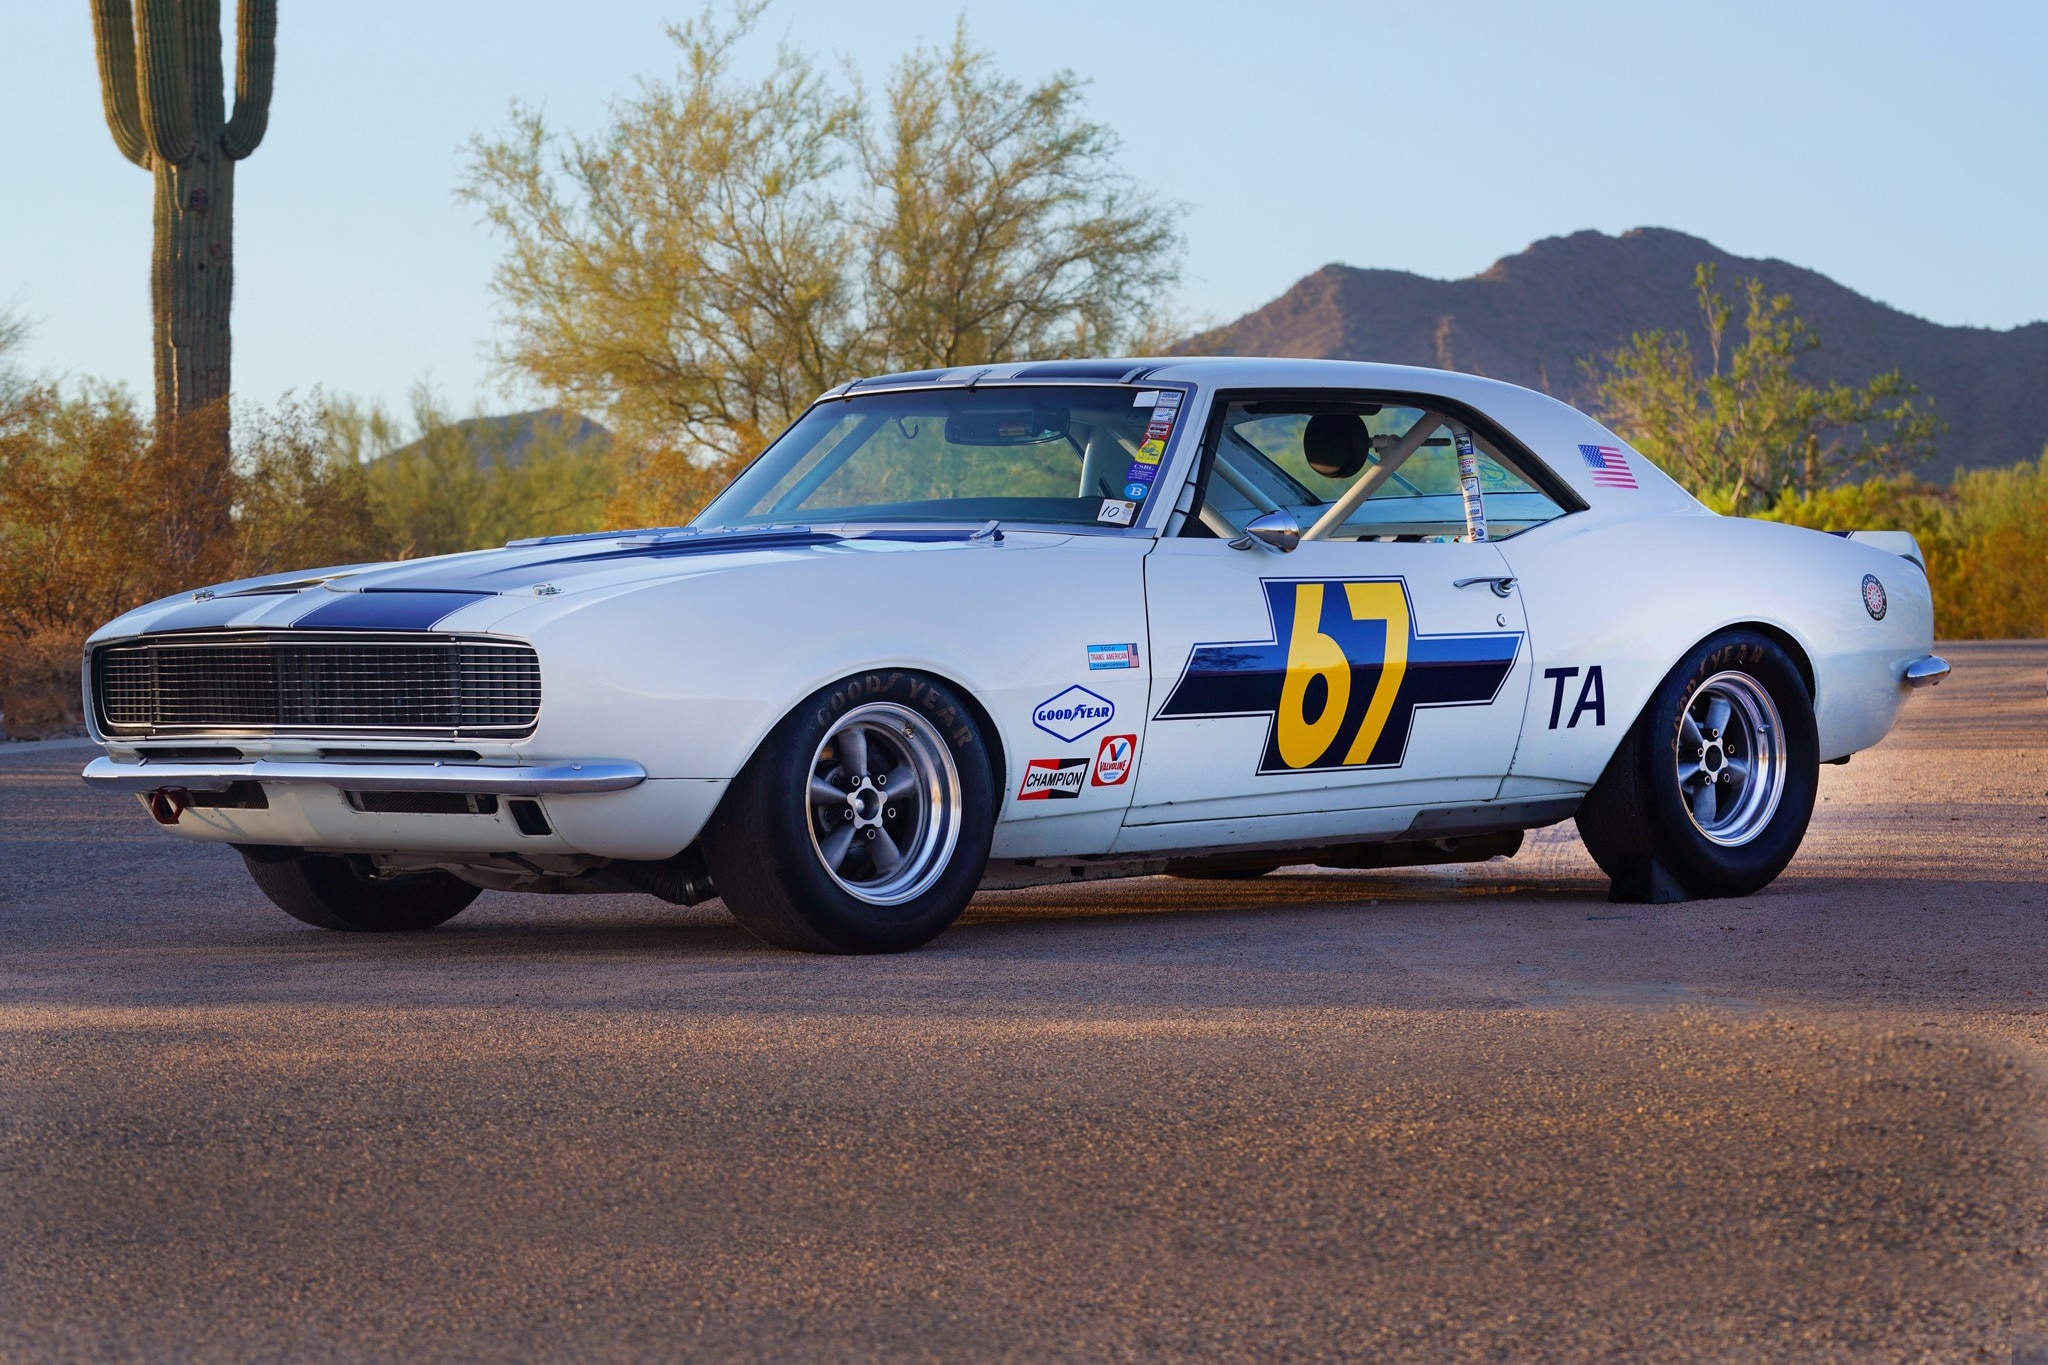 Buy This Trans-Am 1968 Chevrolet Camaro and Race at MMR | Automobile ...